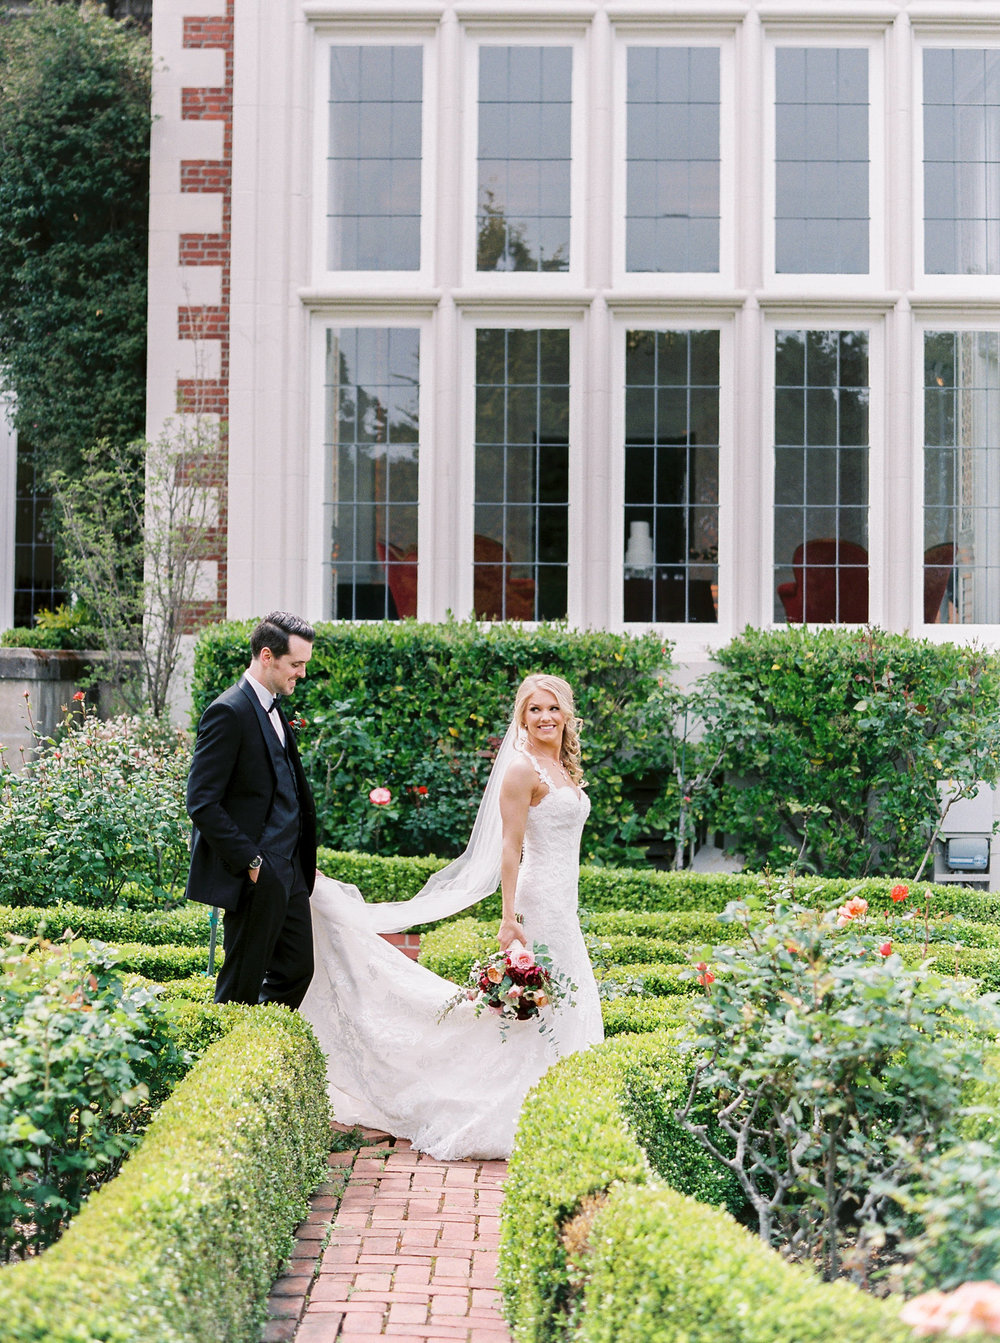 spring-inspired-wedding-at-kohl-mansion-burlingame-california-86.jpg